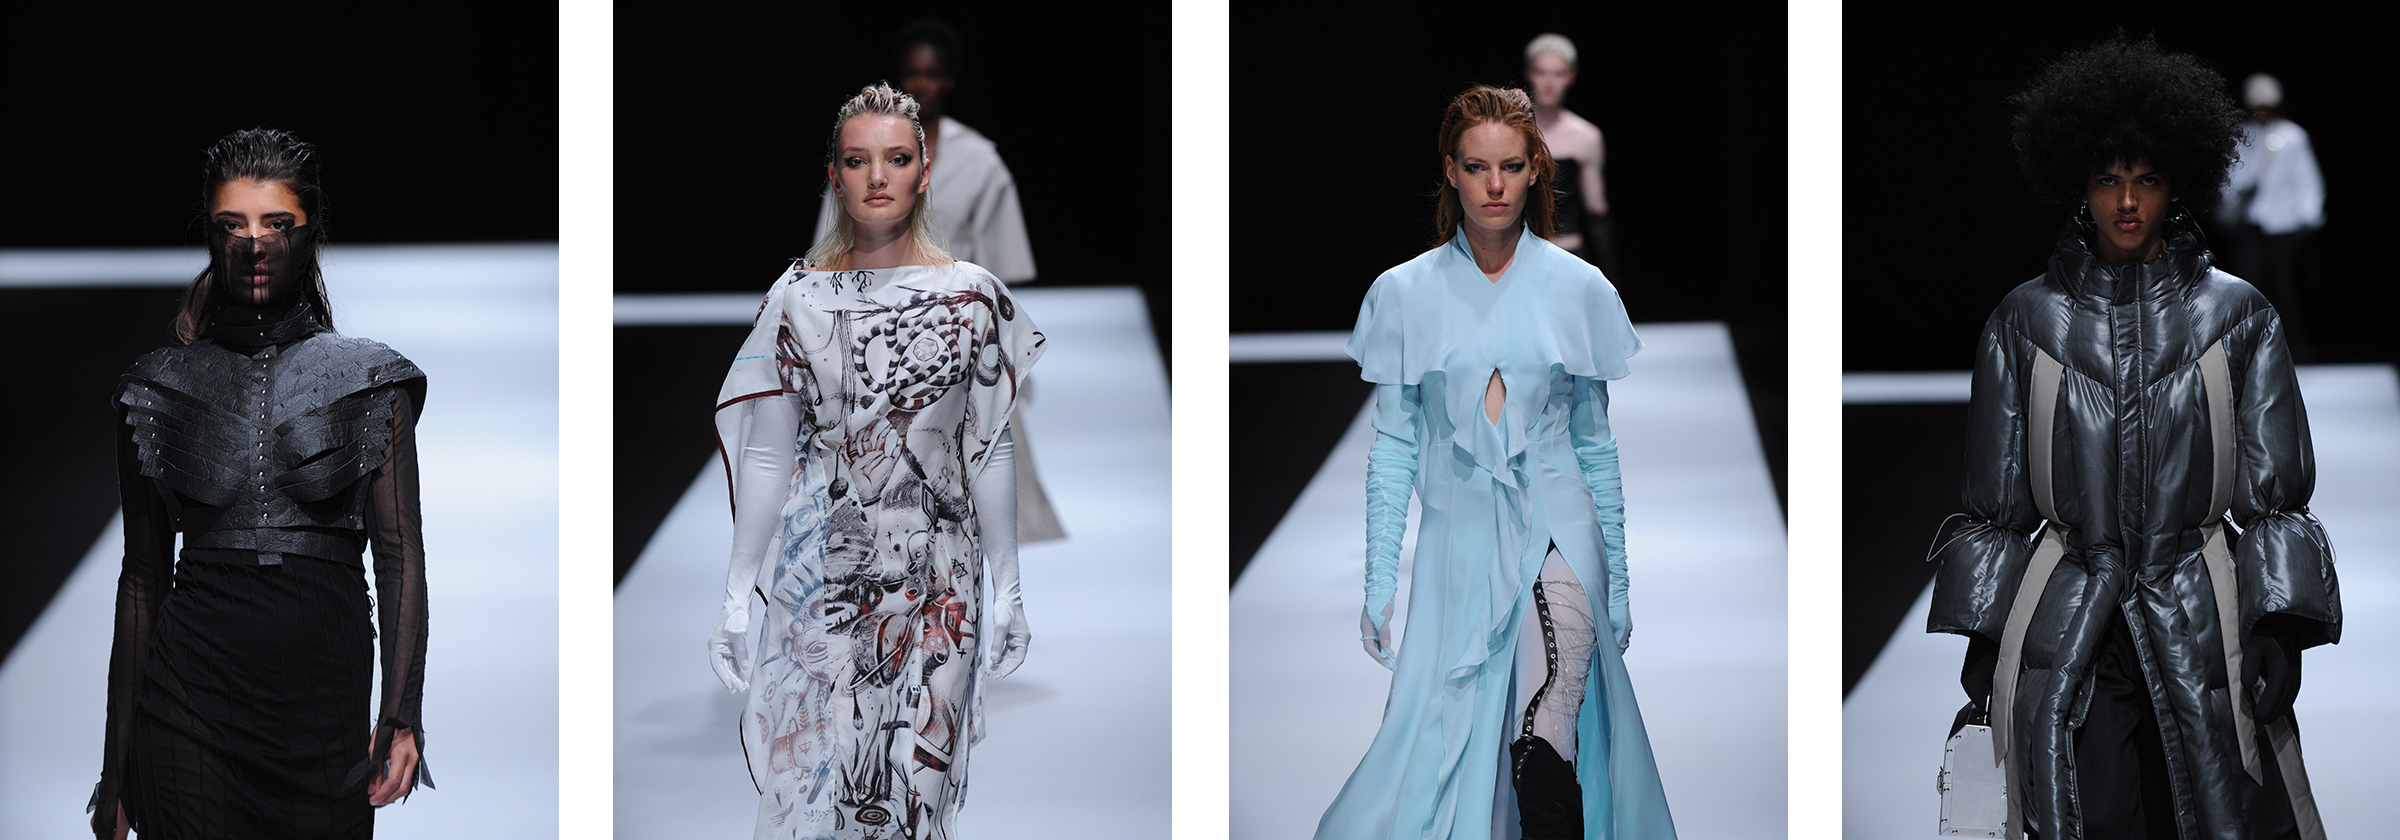 LCF19 collections